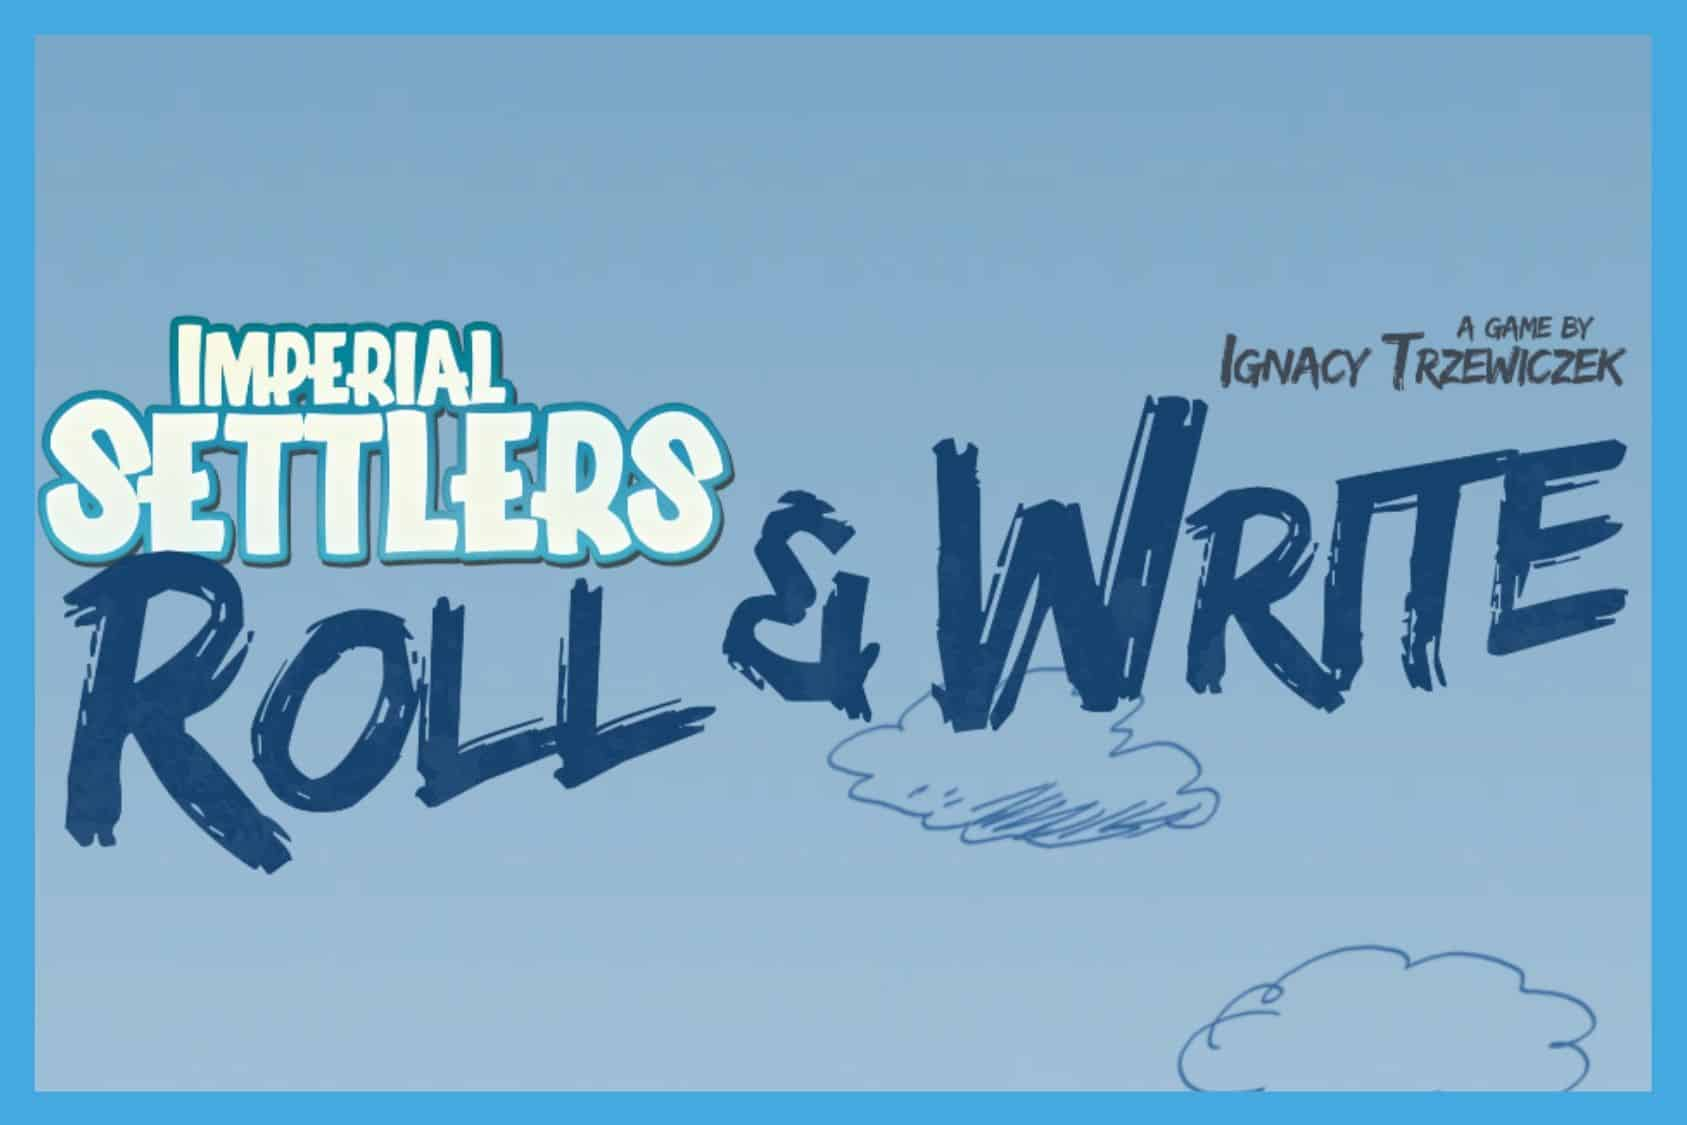 Imperial Settlers Roll and Write